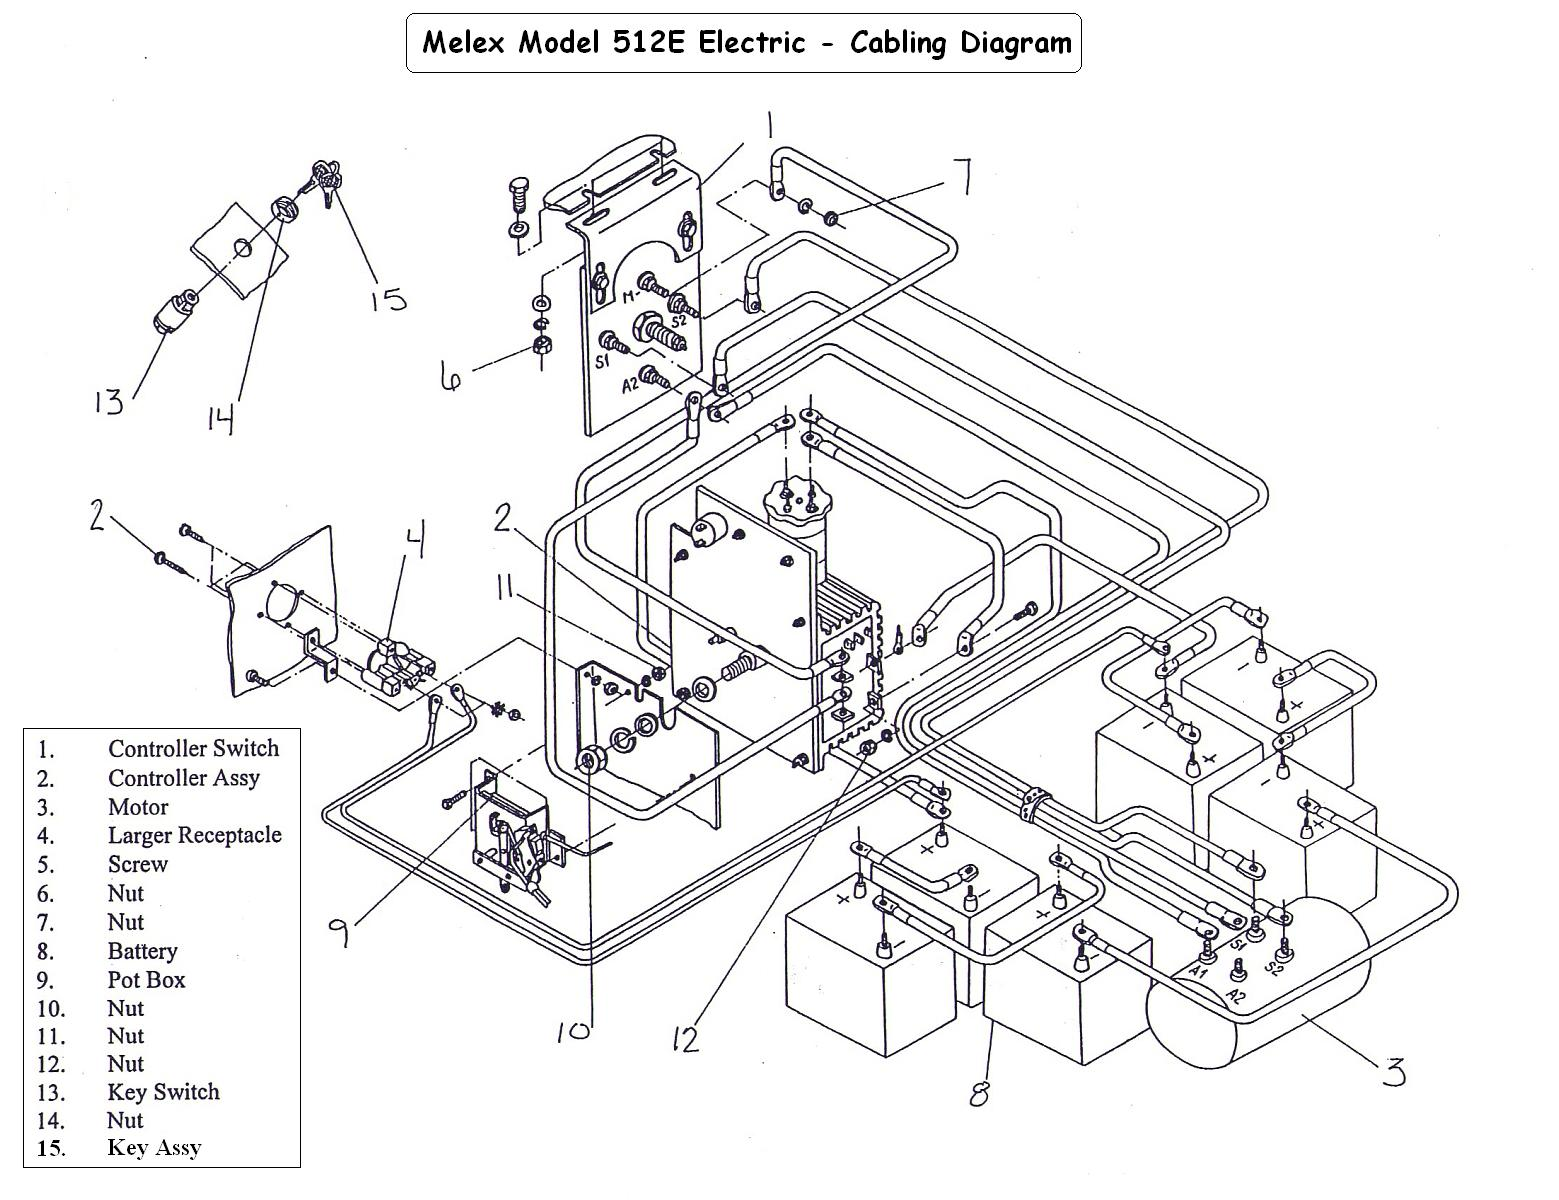 36 volt melex wiring diagram   28 wiring diagram images